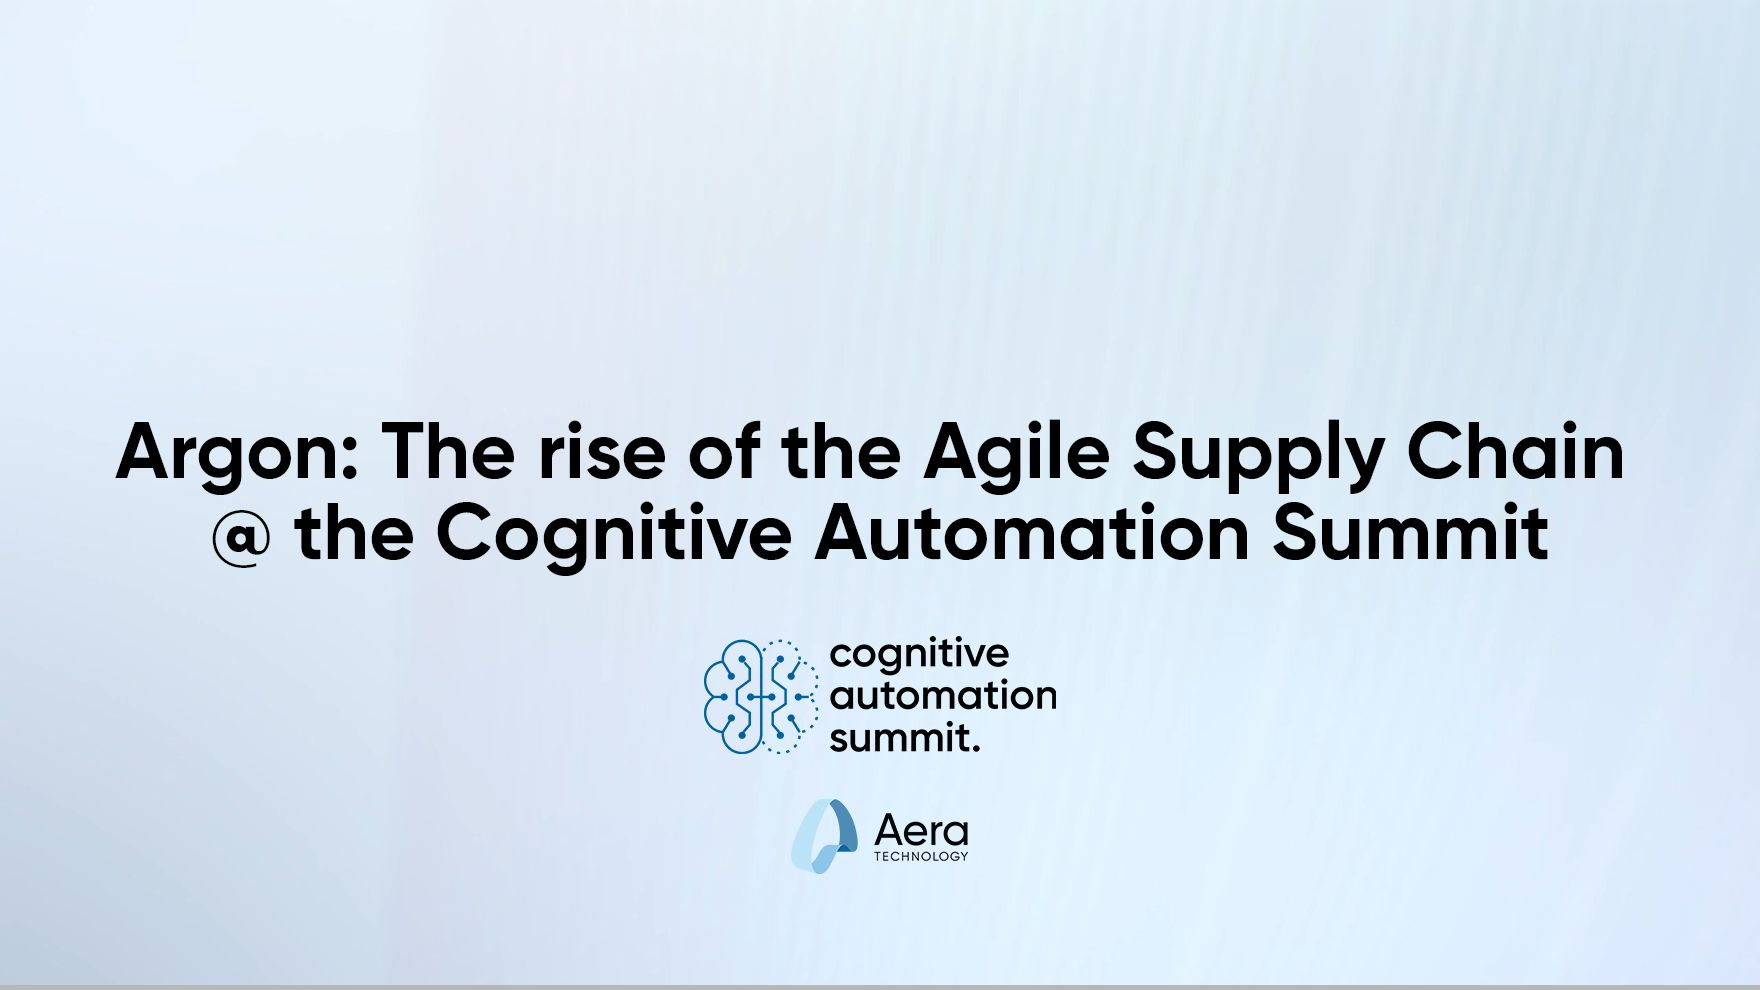 Argon: The rise of the Agile Supply Chain @ the Cognitive Automation Summit